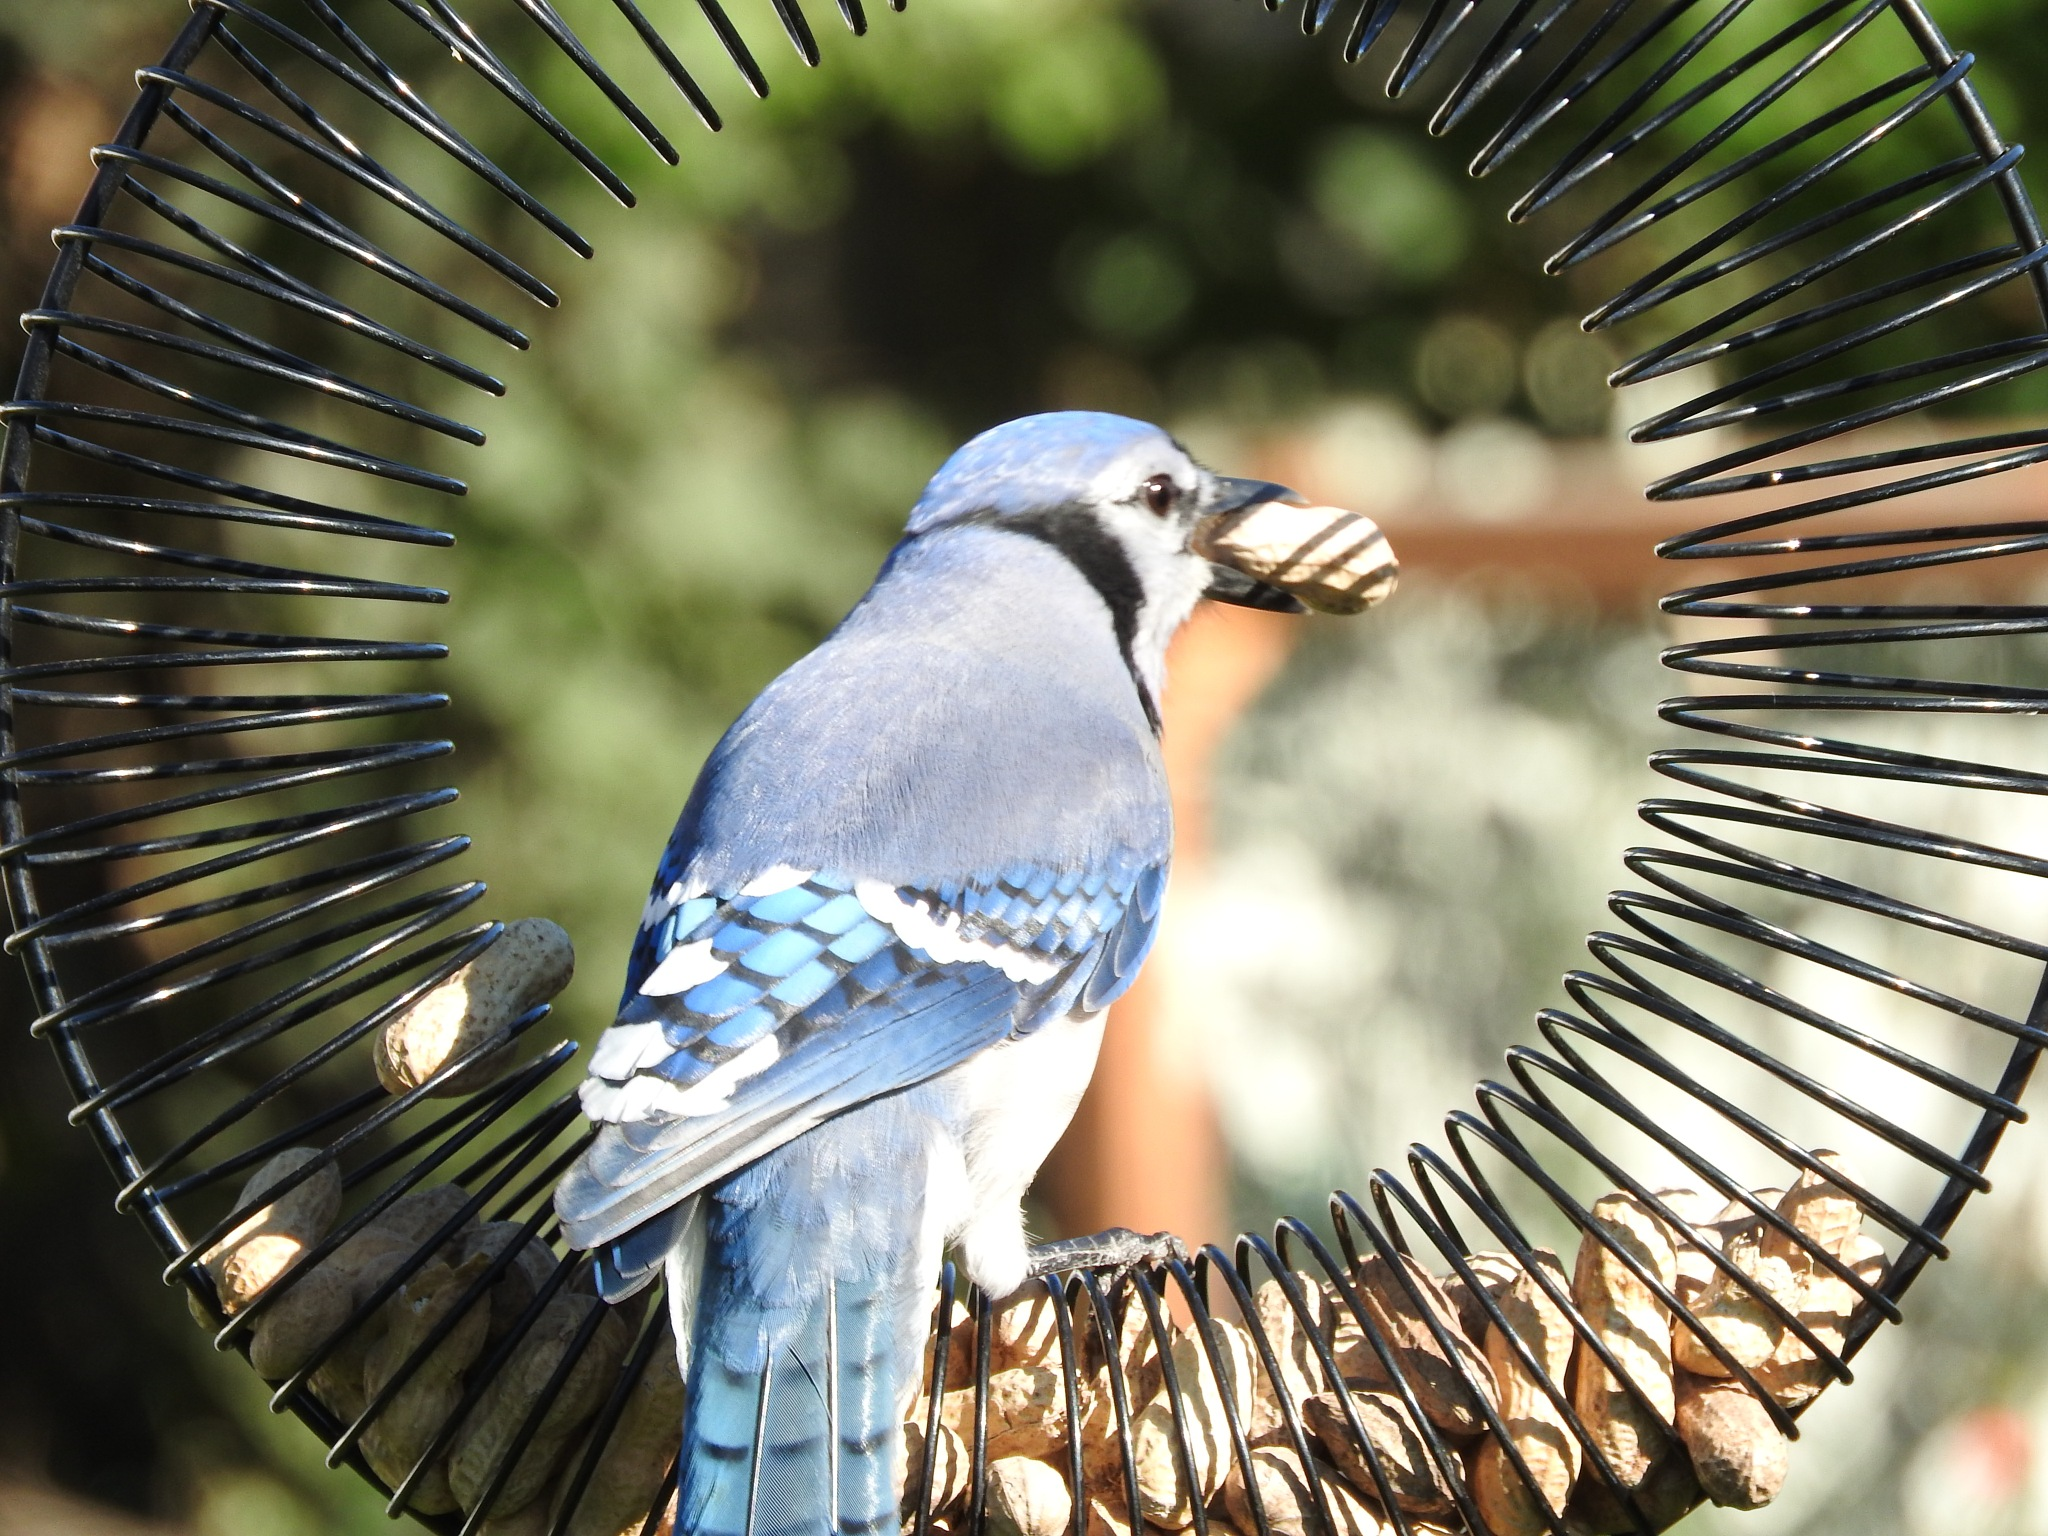 spirals and shadows surrounding this beautiful jay by Lorraine Furmanic